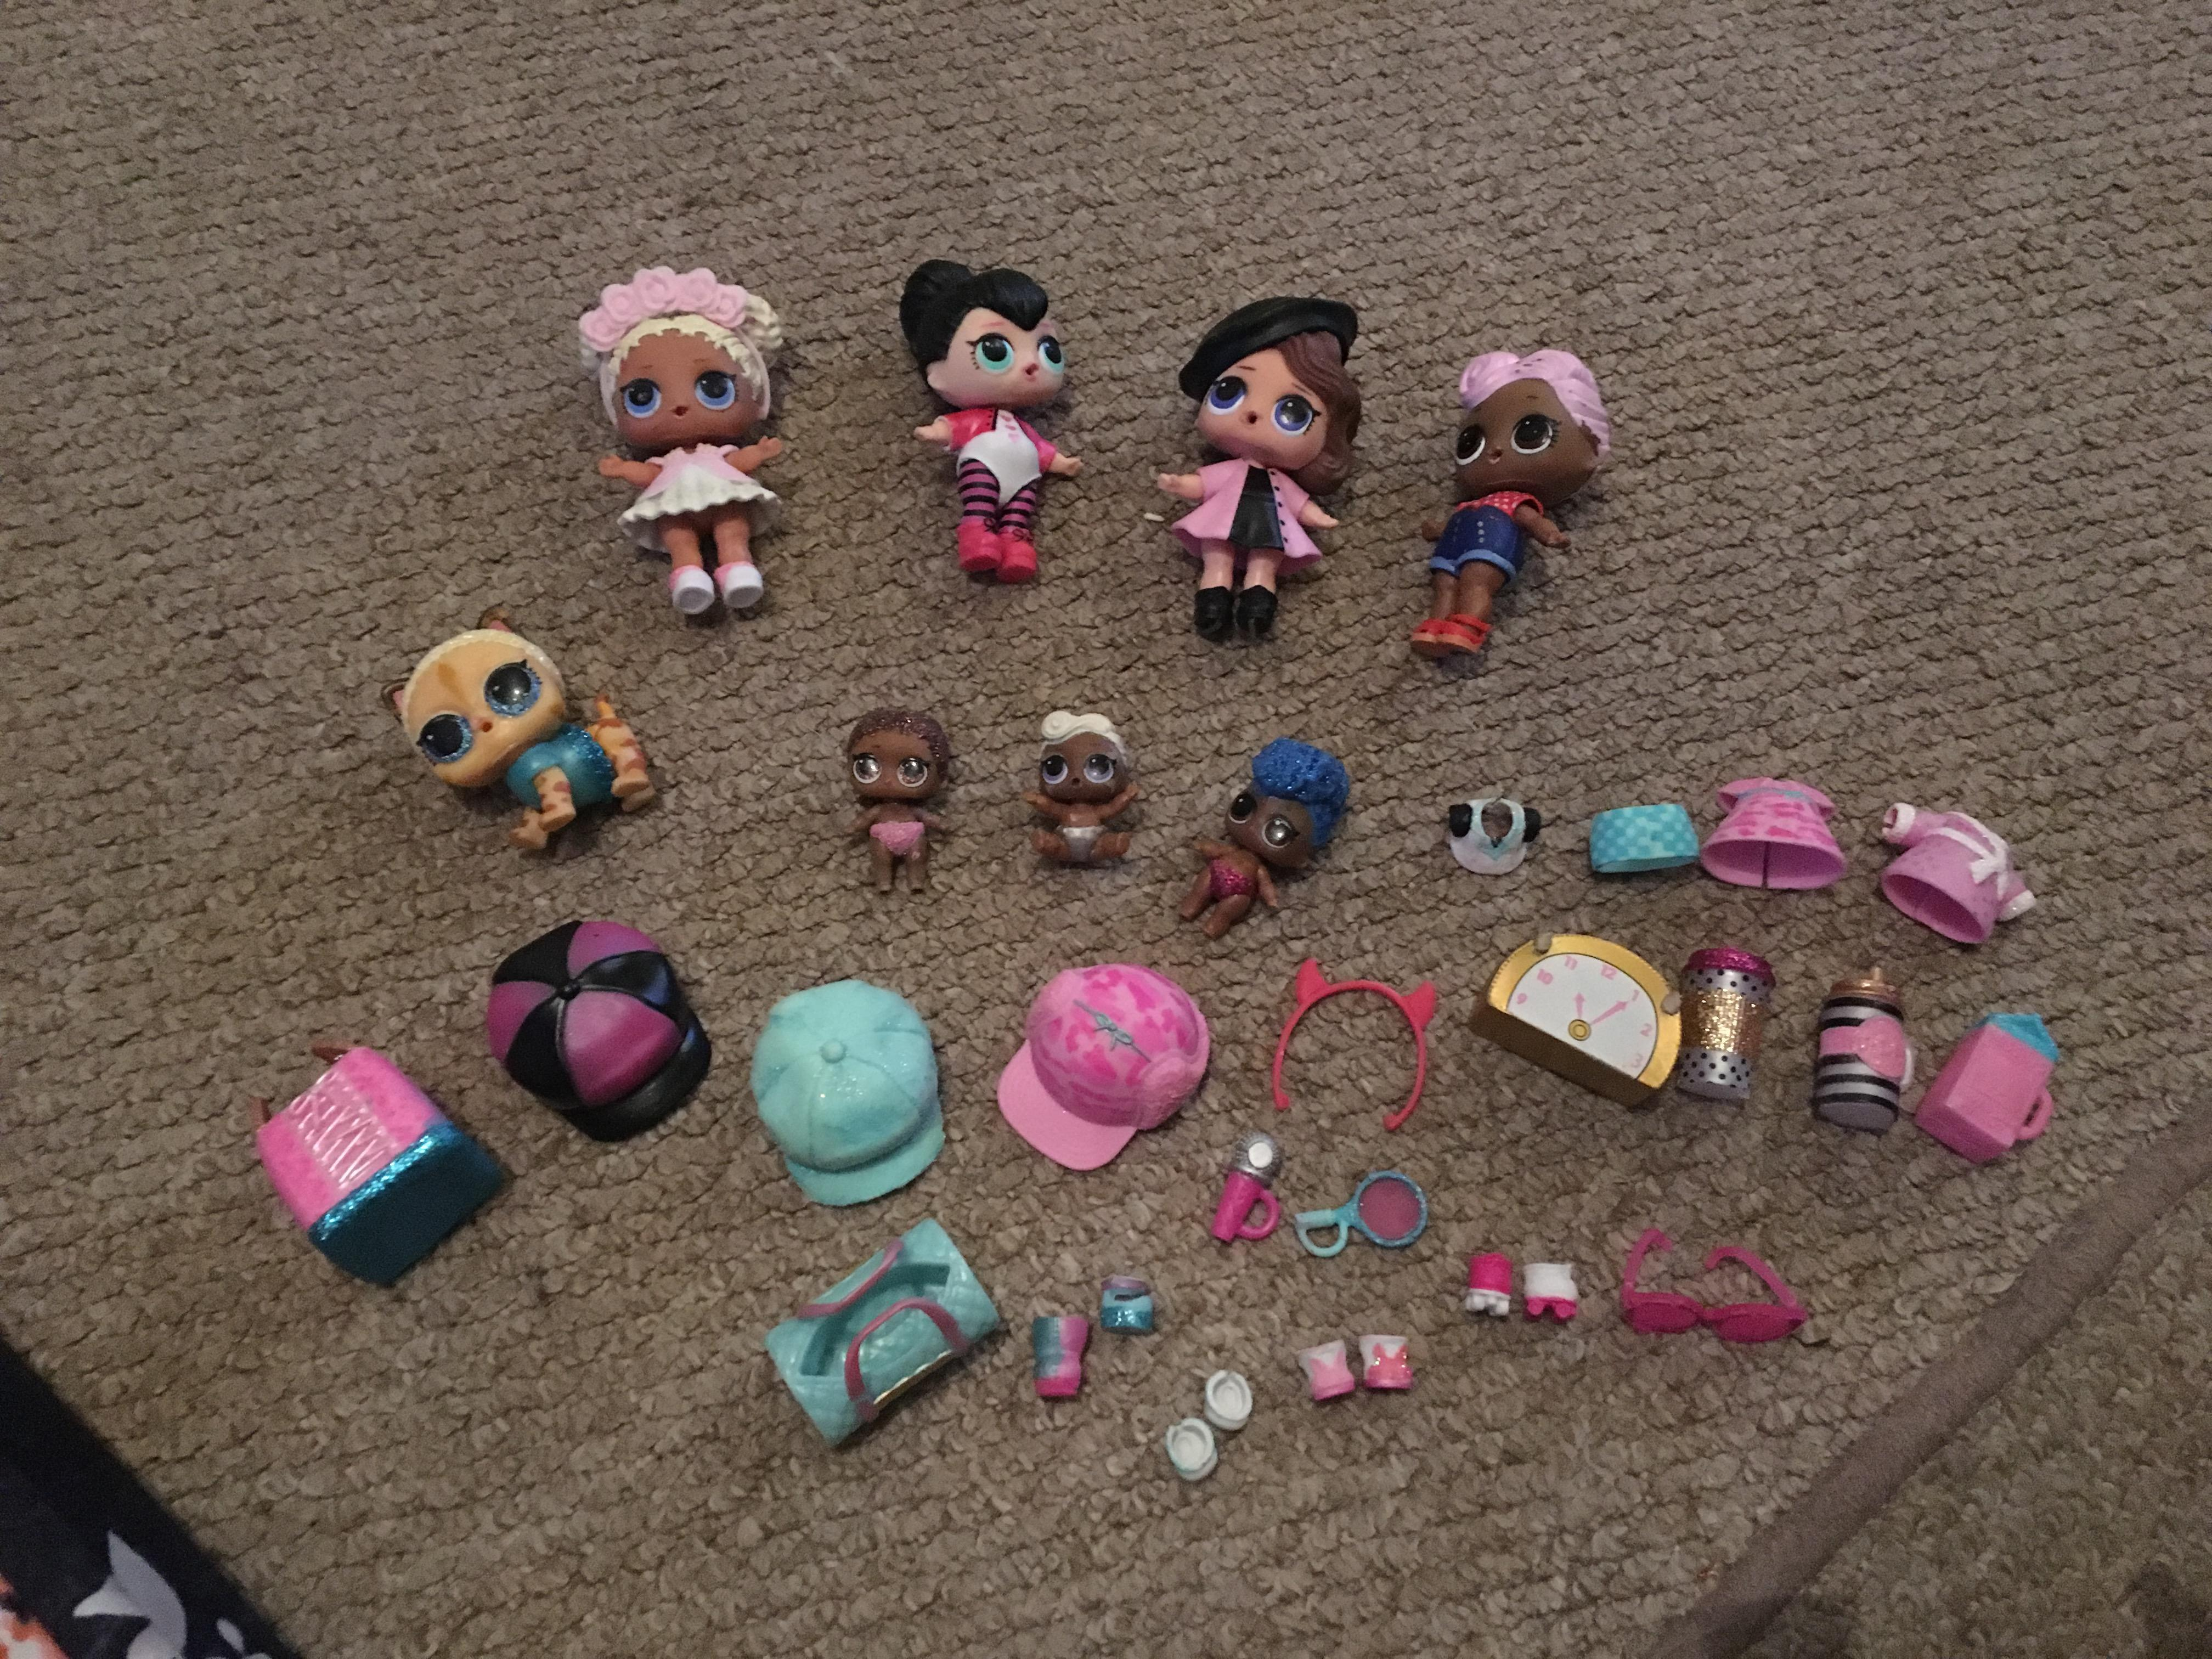 LOL Dolls and accessories